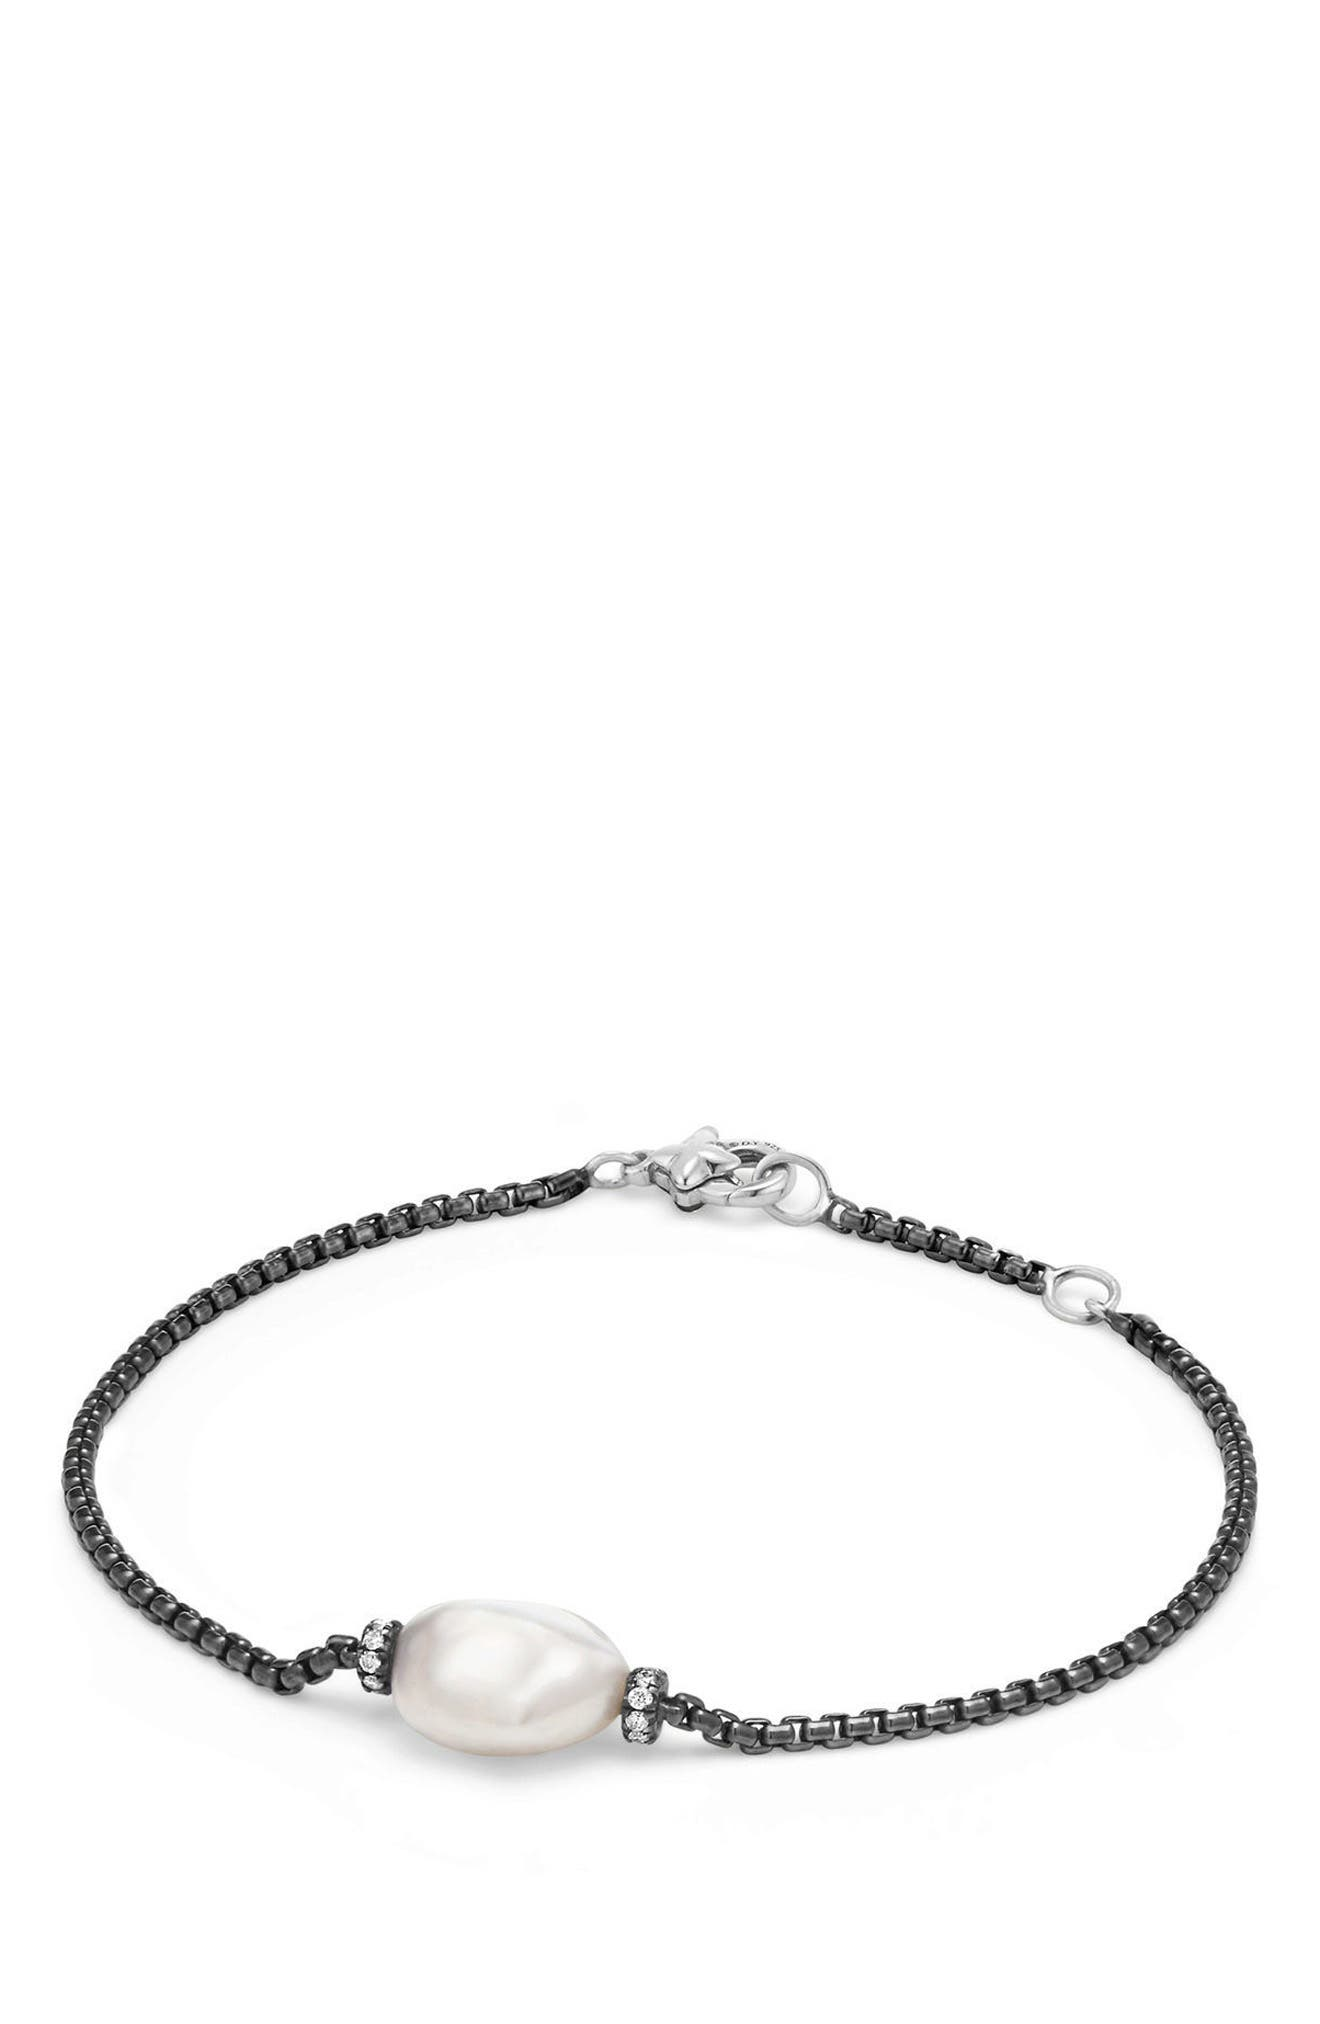 Solari Station Bracelet with Diamonds and Pearl,                         Main,                         color, Silver/ Pearl